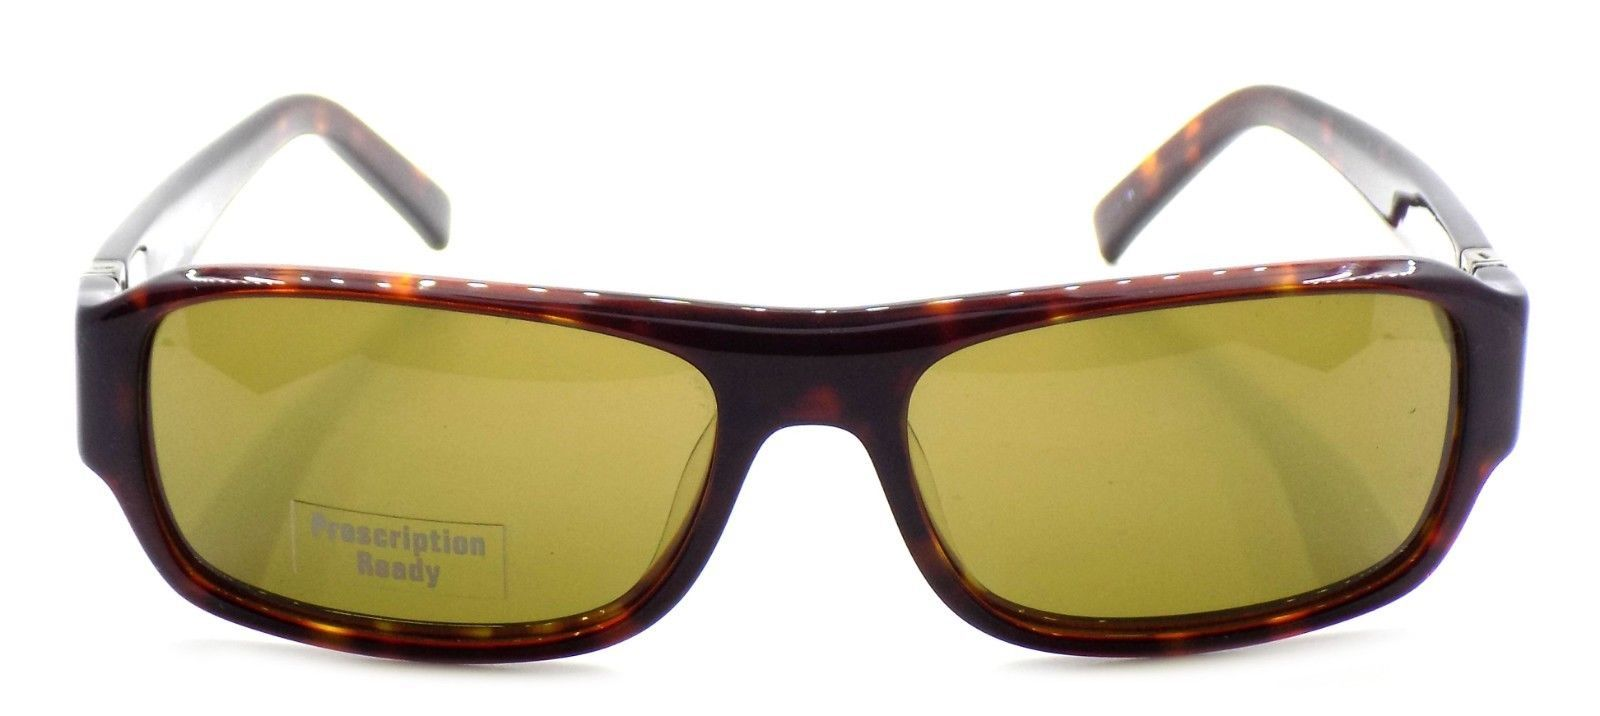 22efdcf874d0 Harley Davidson HDX801 TO Sunglasses Tortoise 55-17-135 Brown Lens + CASE